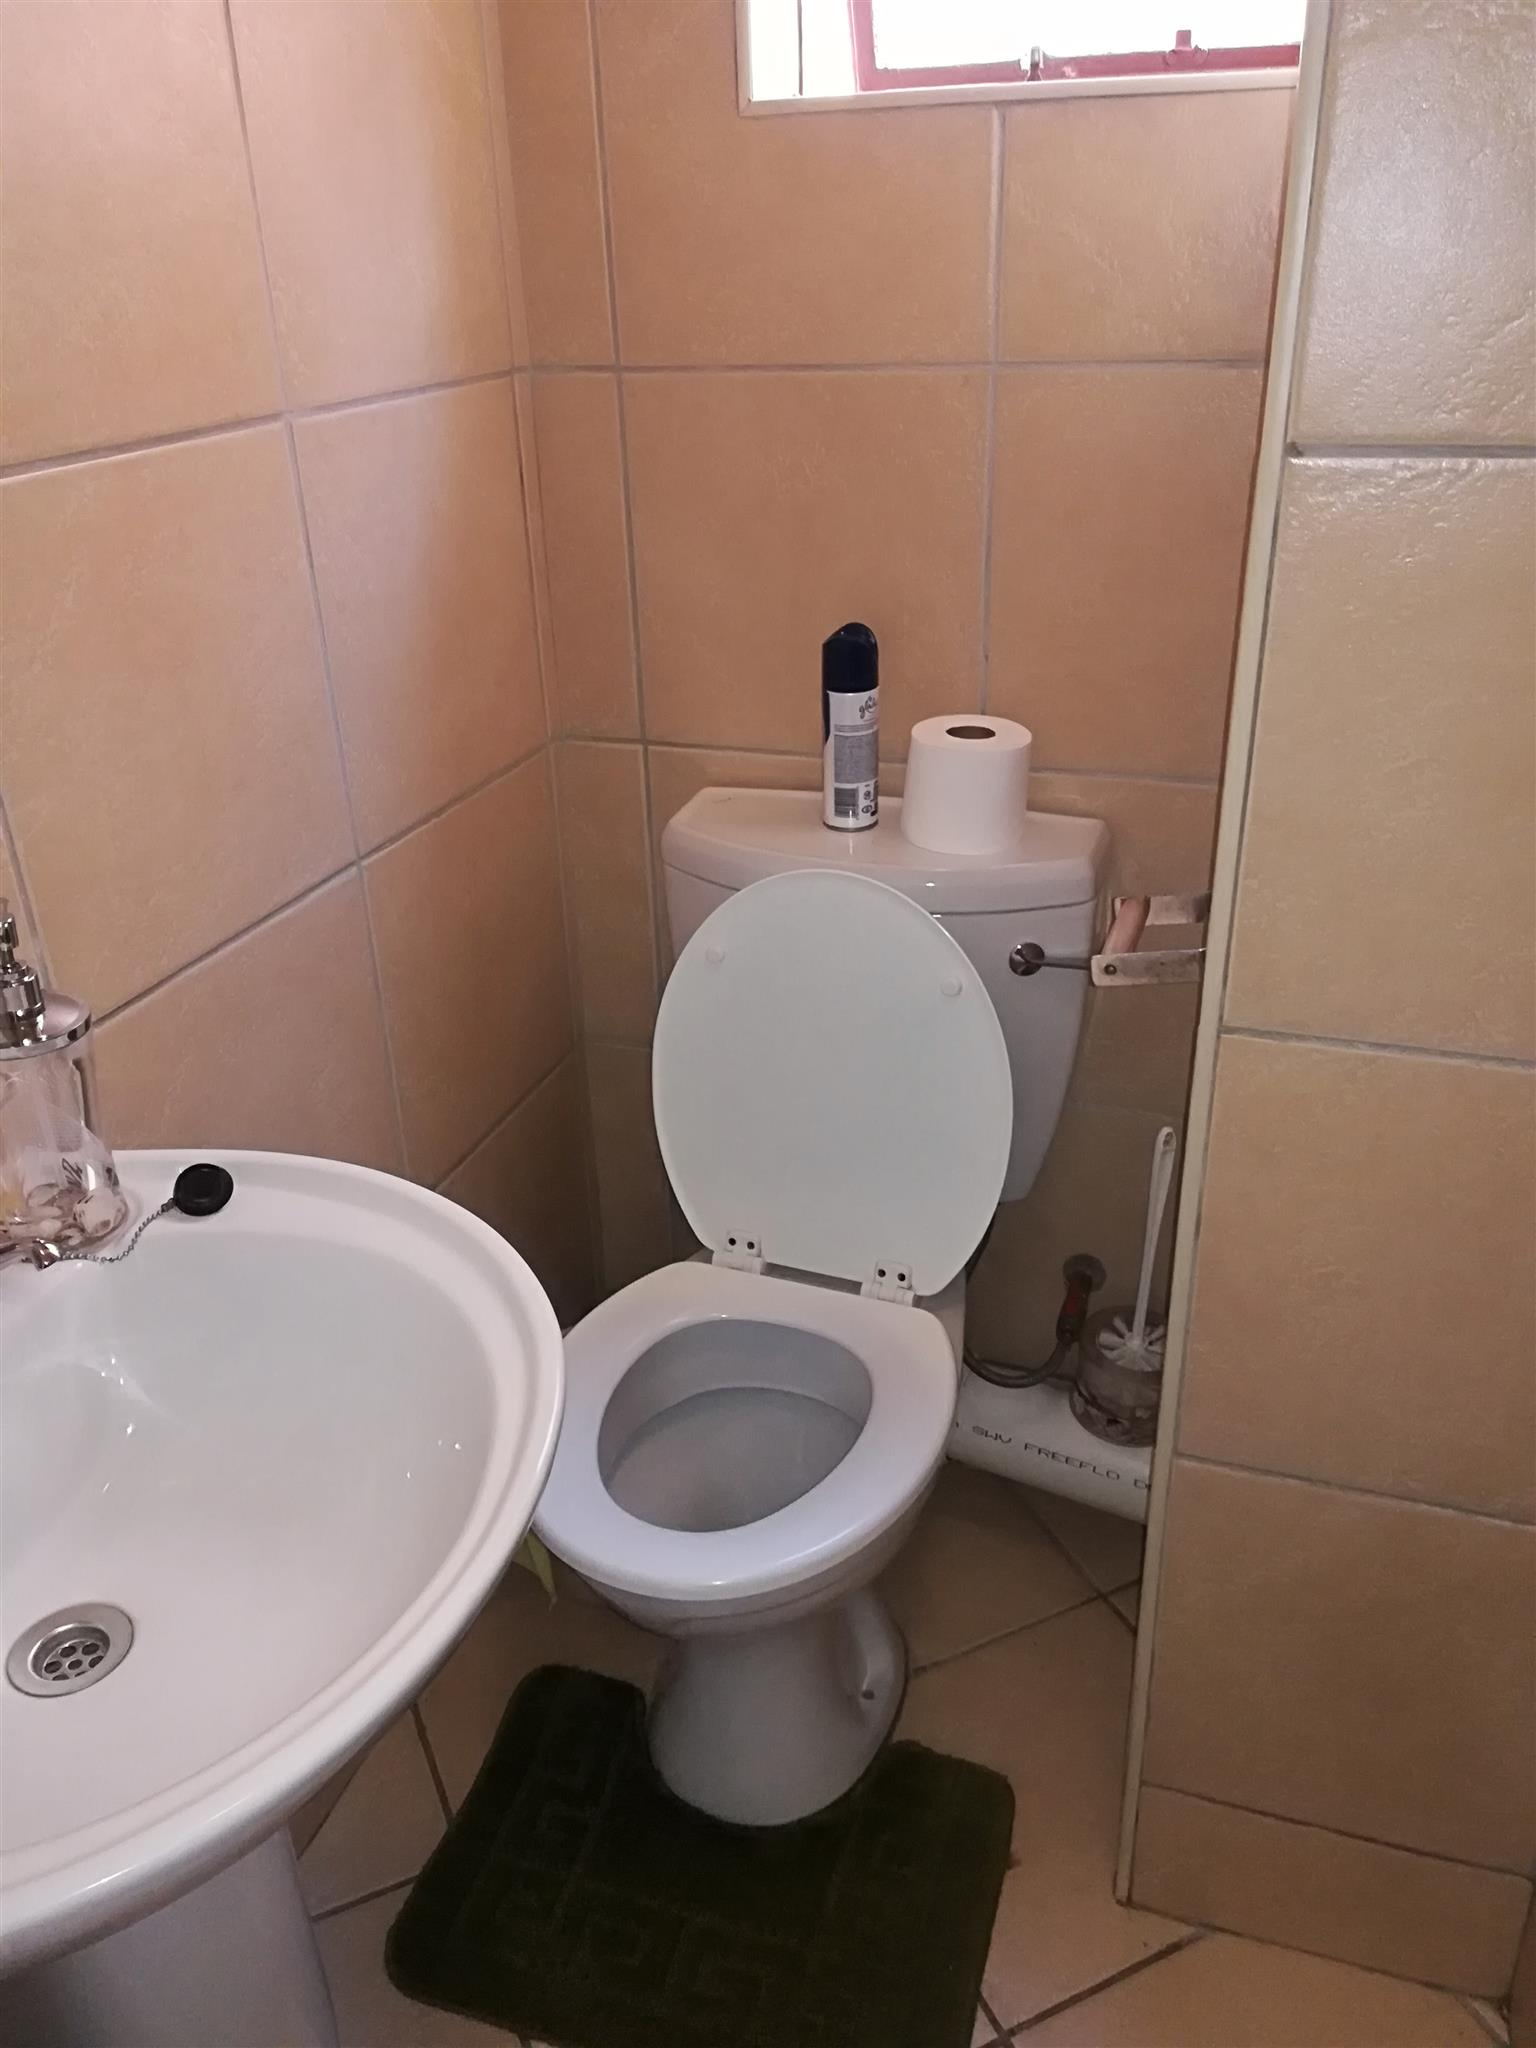 A Specious One Room to Rent in Two Bedroom Flat in Pretoria West from the 01st of August 2019.